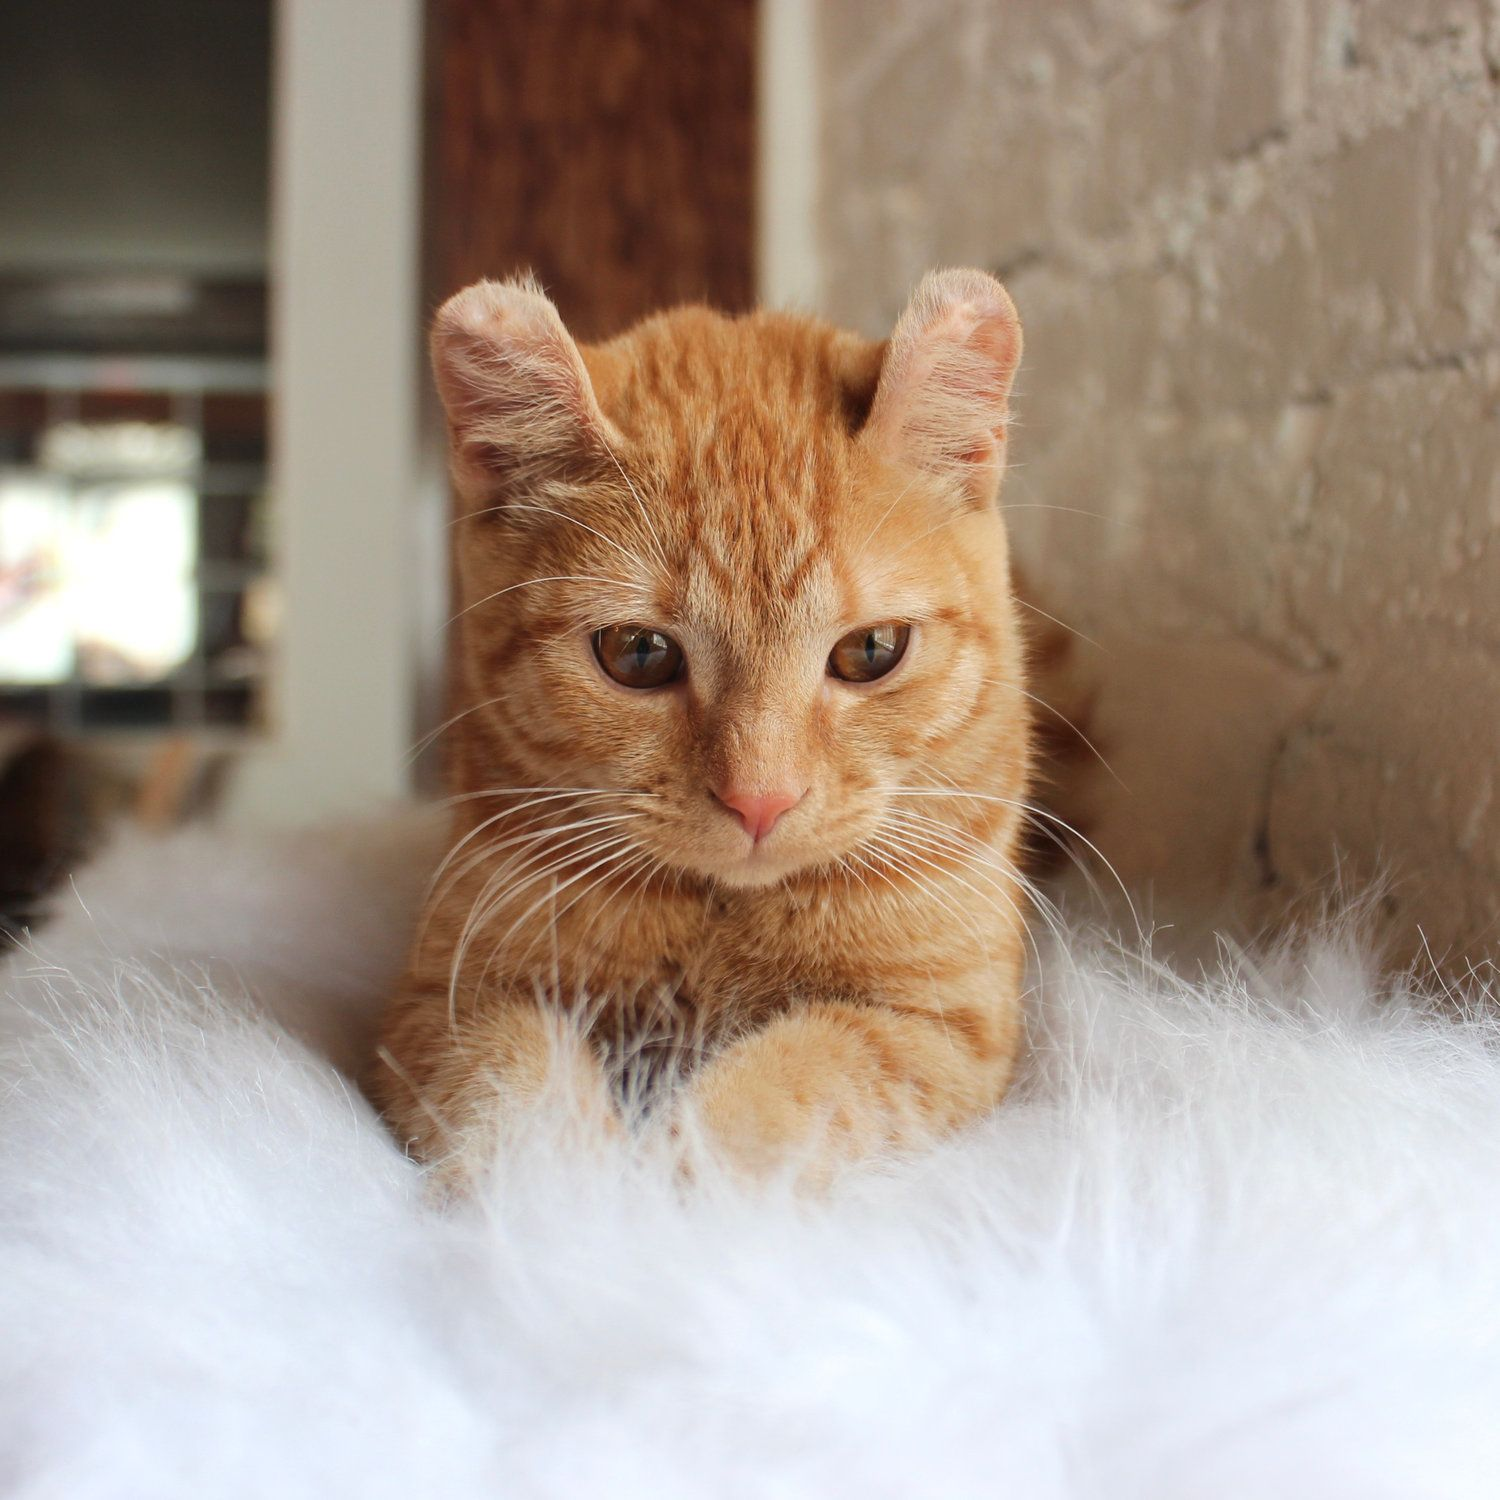 Pin by Dale Baker on Kittens and Cats | Pinterest | Cat cafe and Cat